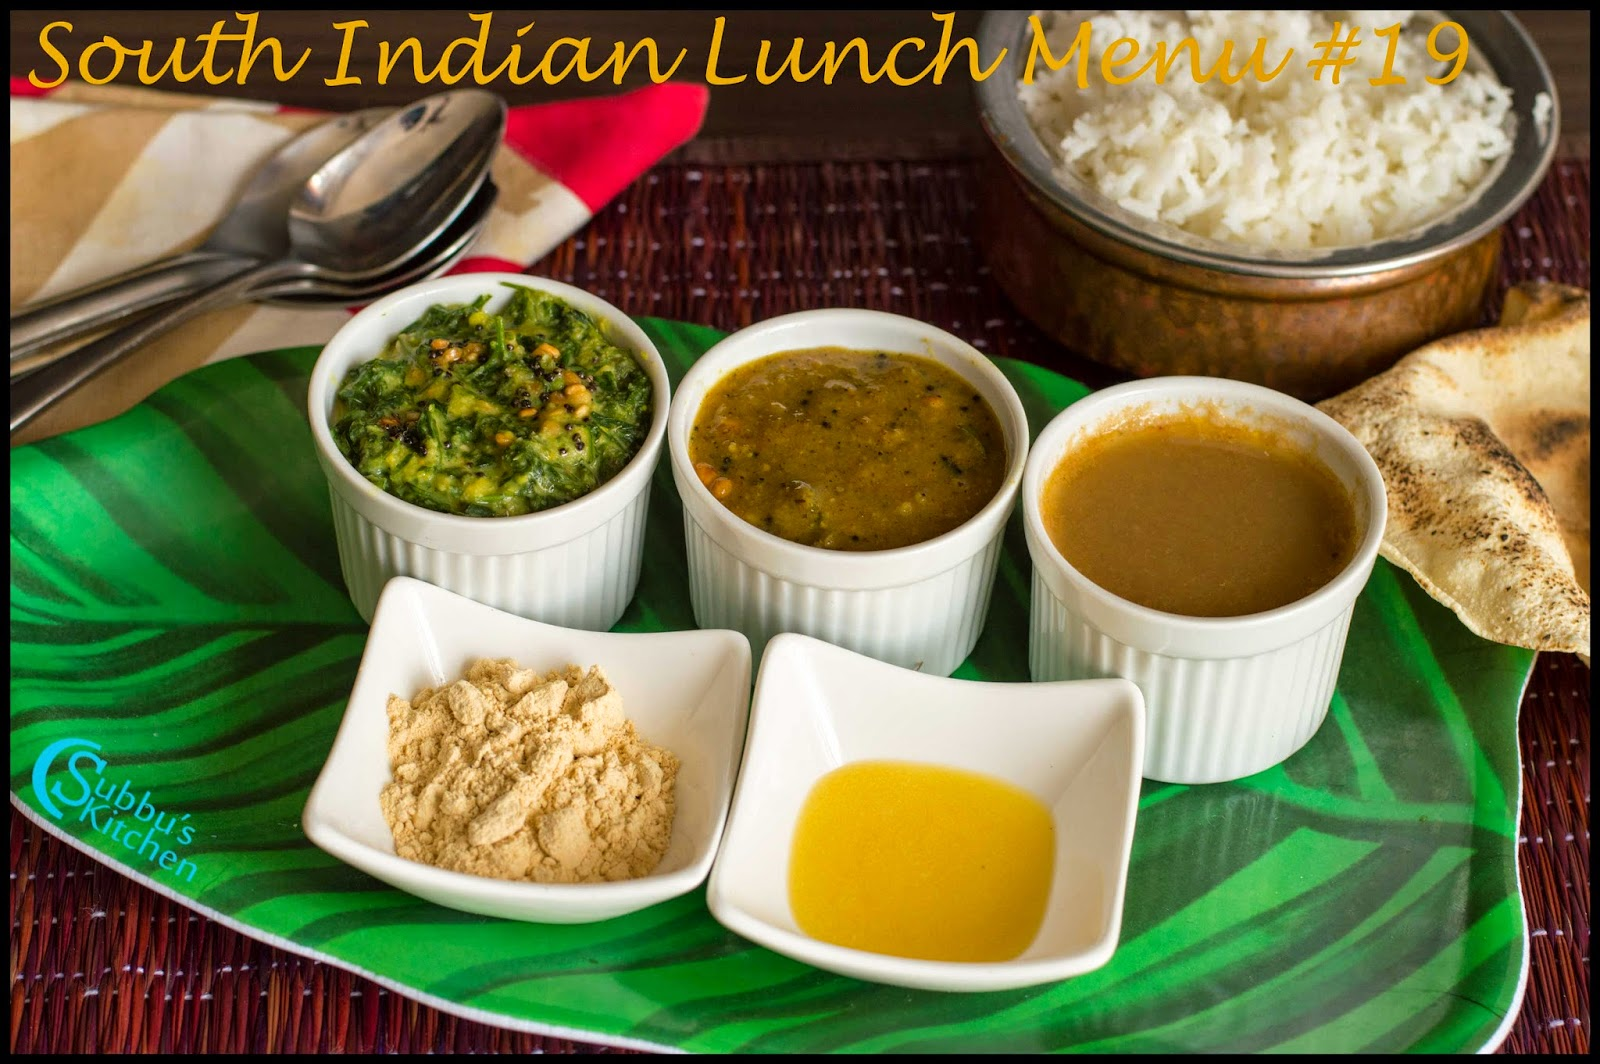 South Indian Lunch Menu 19 - Paruppu Podi, Inji Kuzhambu,Manathakali Keerai Kootu, Poondu rasam, Boiled Rice and sutta appalam